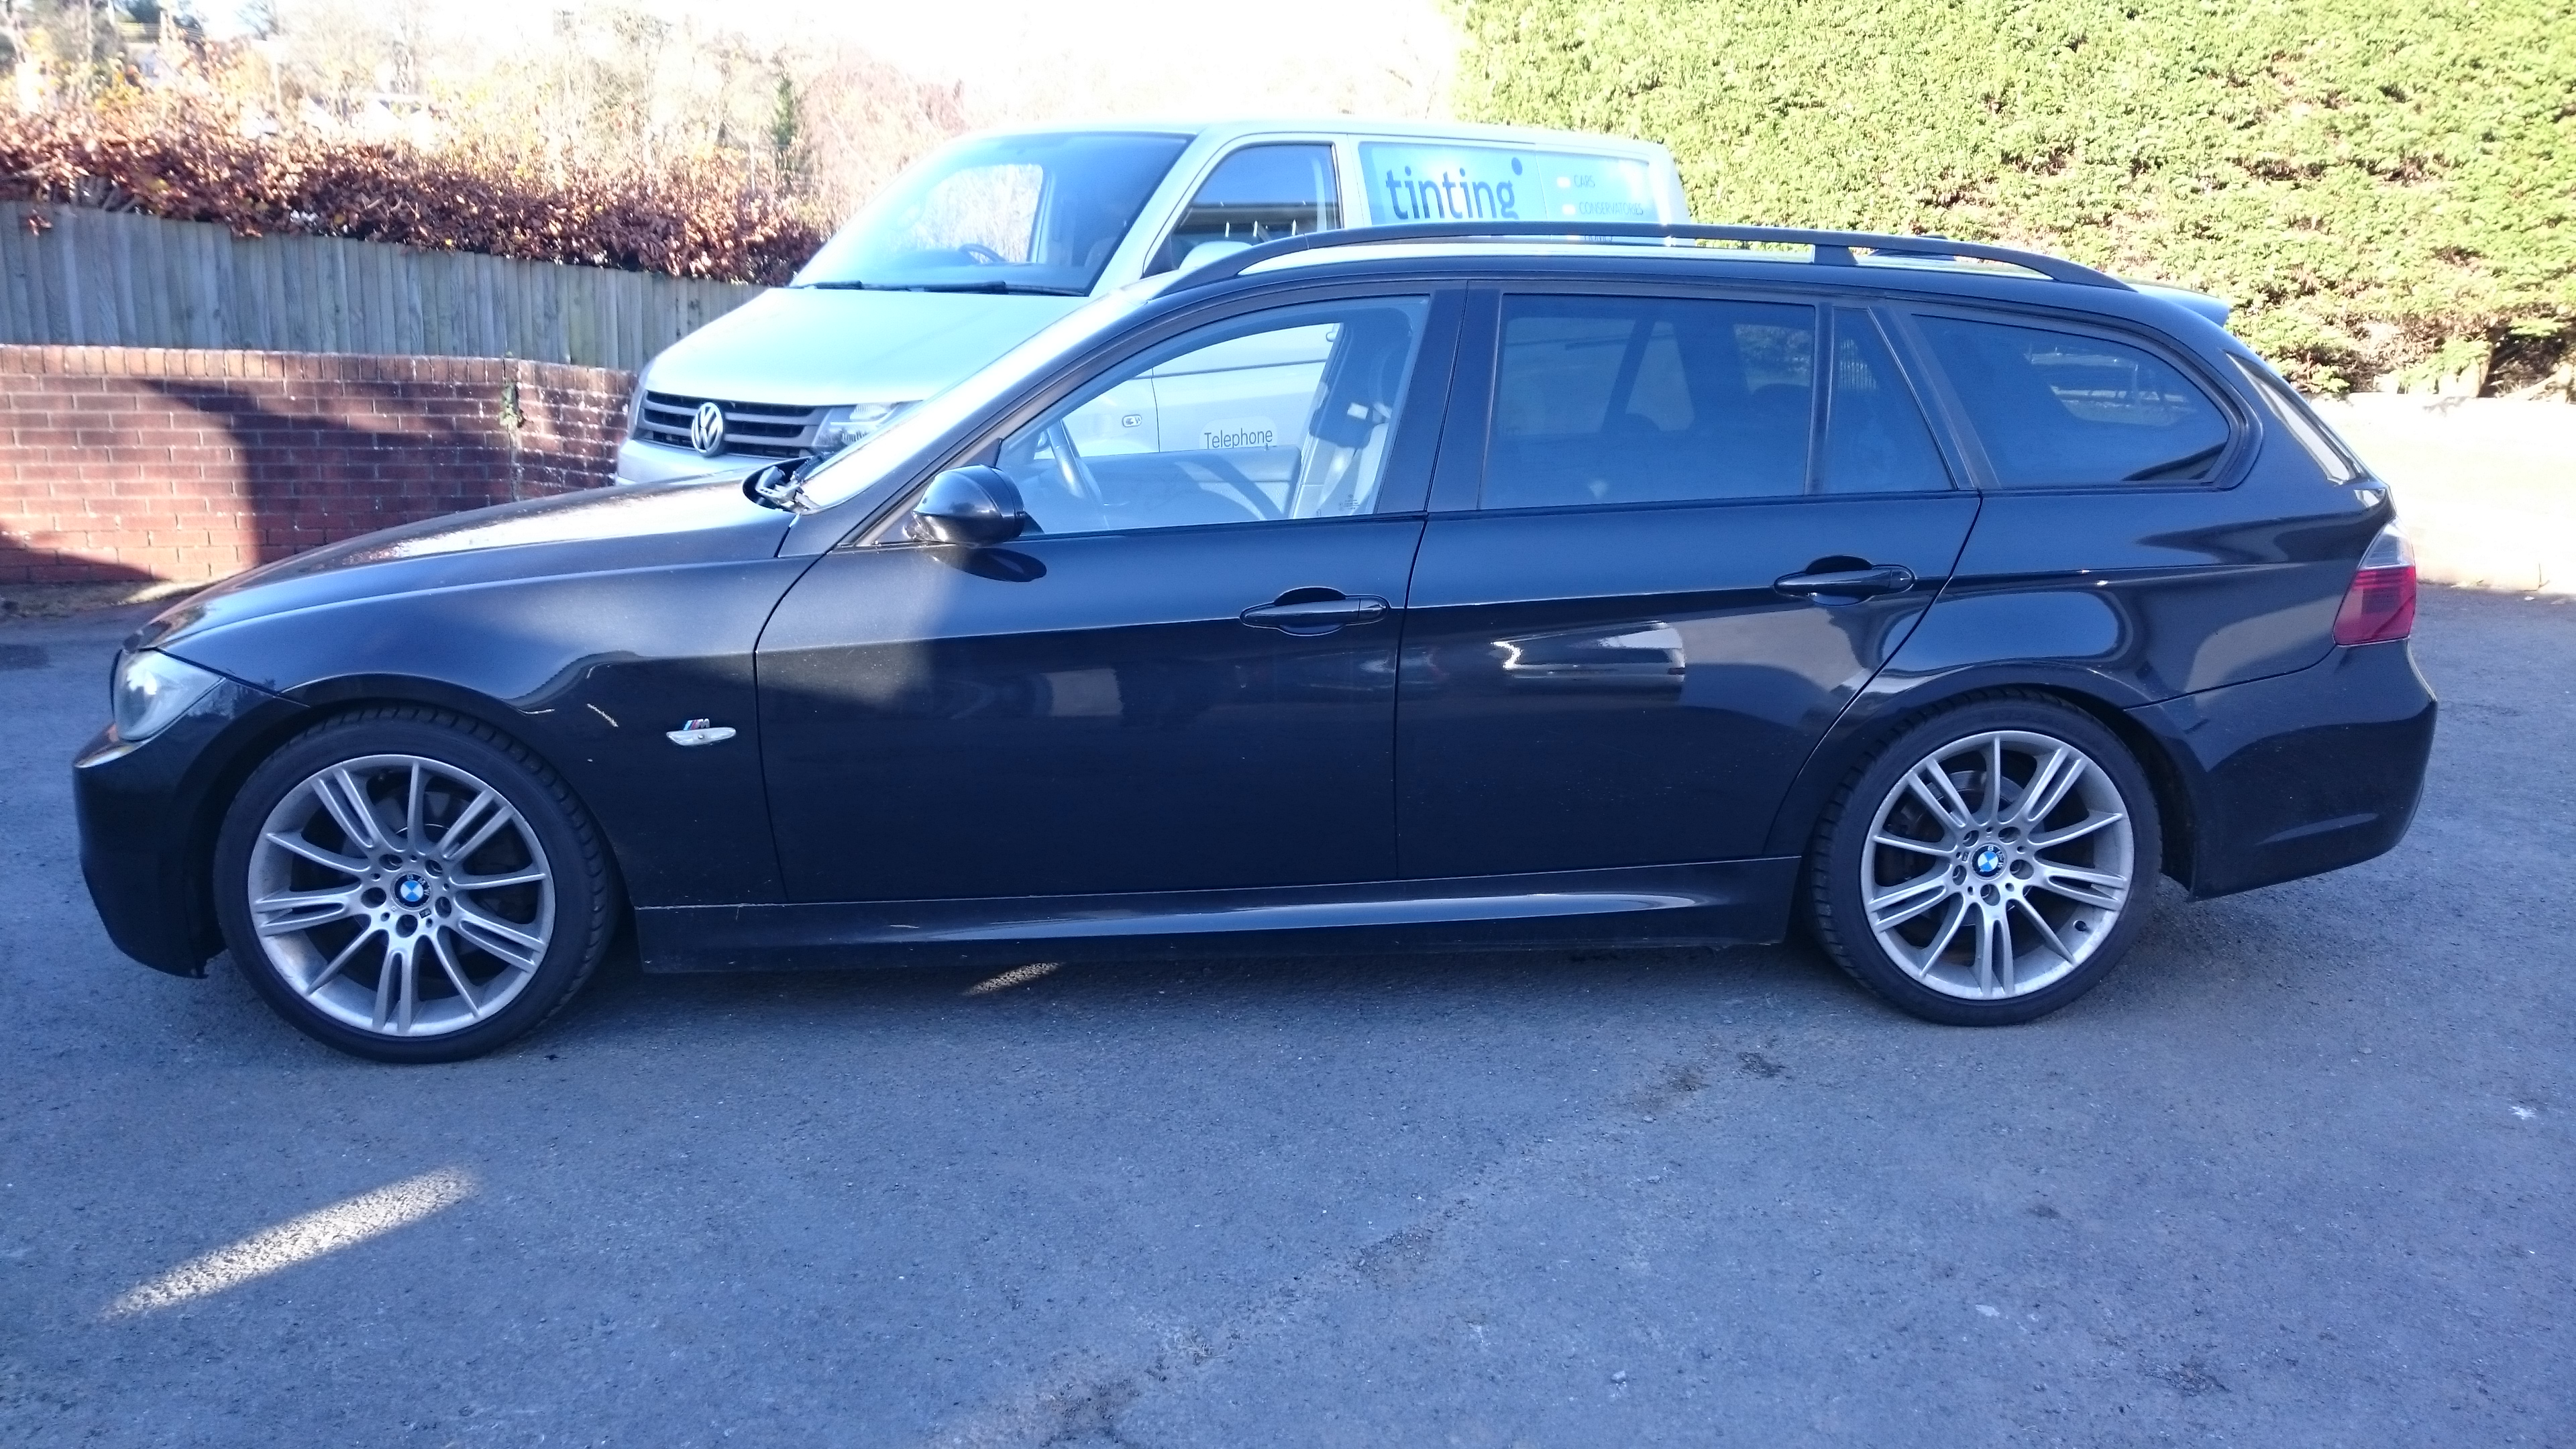 BMW 3 Series estate 20% vlt in bright sunlight looks lighter . Tinting Express